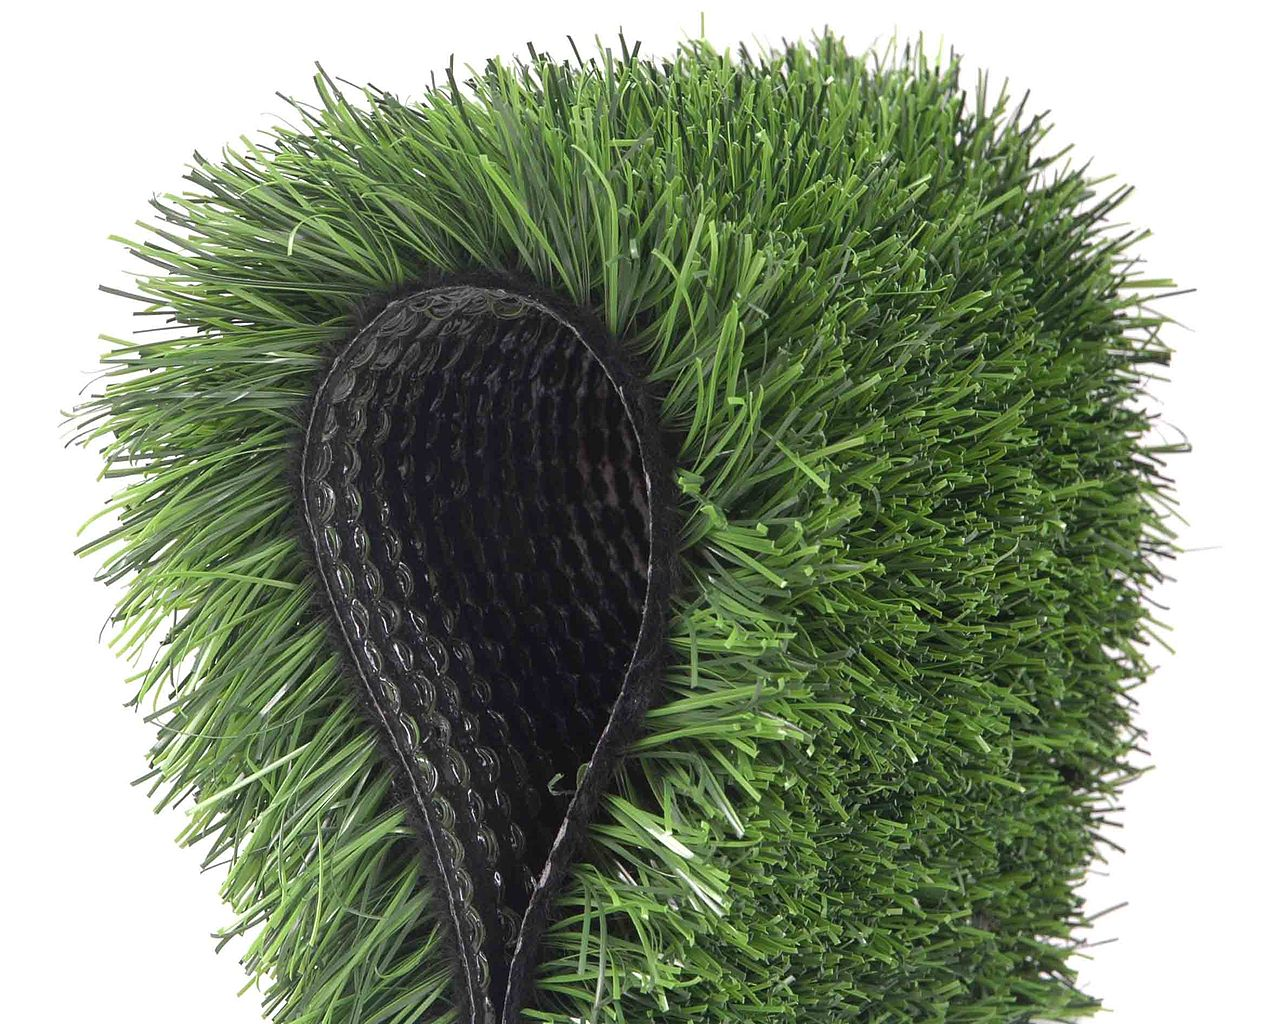 Buy Fake Grass Can Artificial Grass Be Recycled Artificialgreens Org